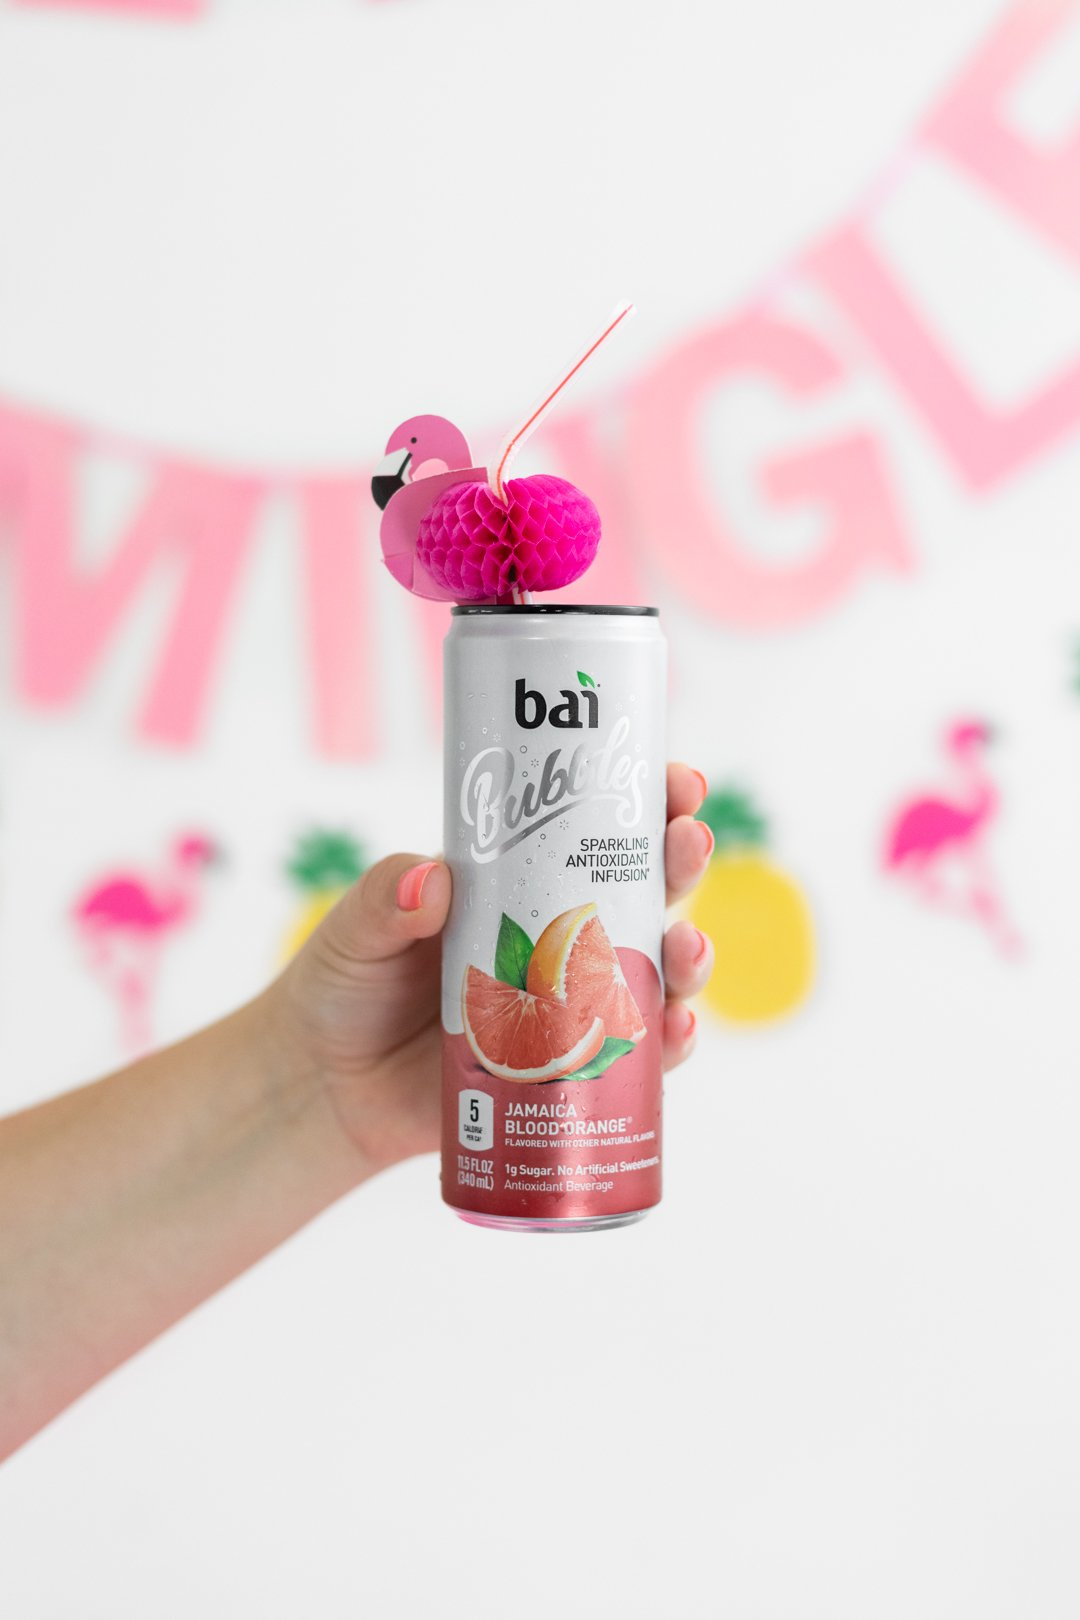 Flamingo Themed Party for Summer featuring Bai Bubbles.